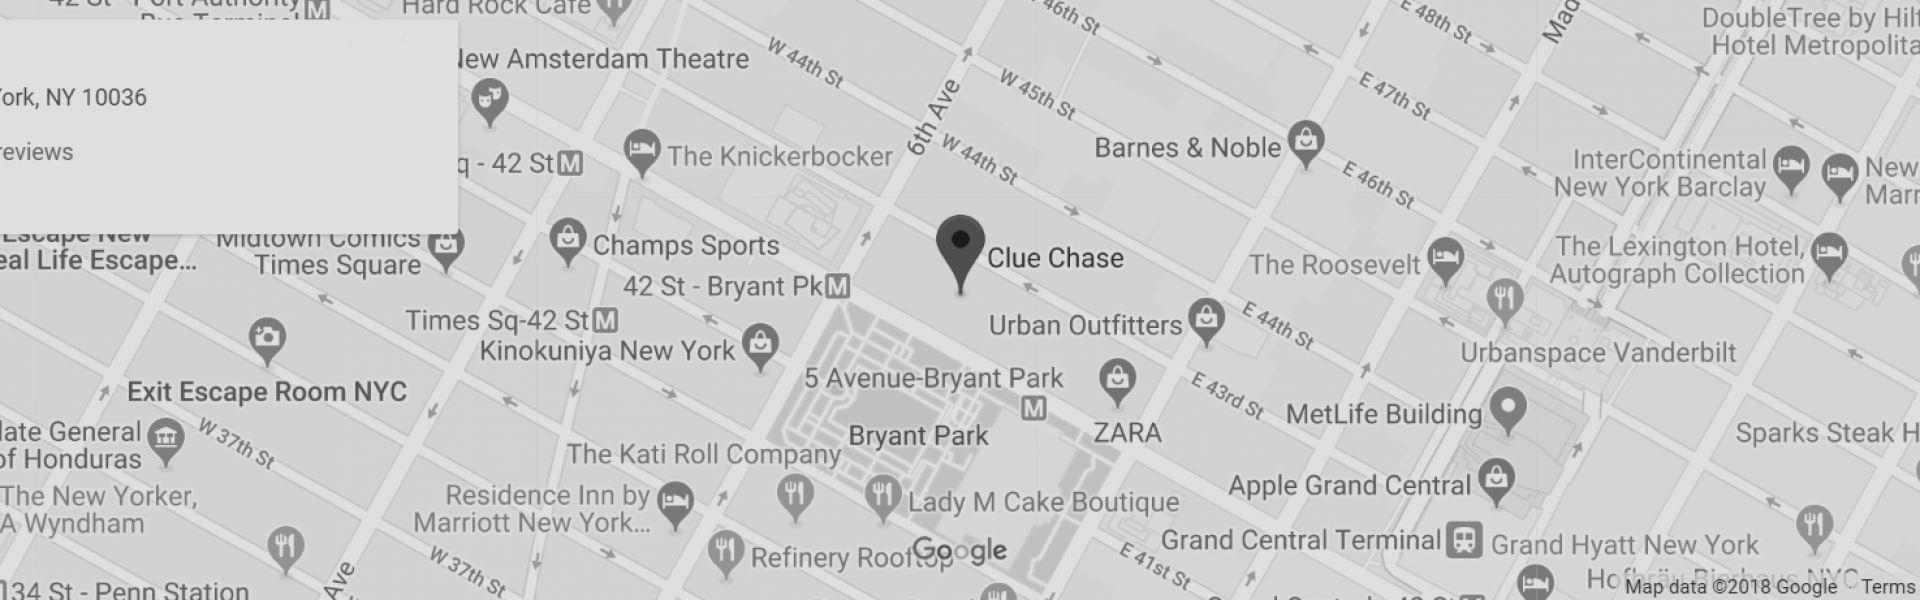 screenshot of google maps displaying clue chase's location on 42nd street between 5th and 6th avenue in Manhattan.